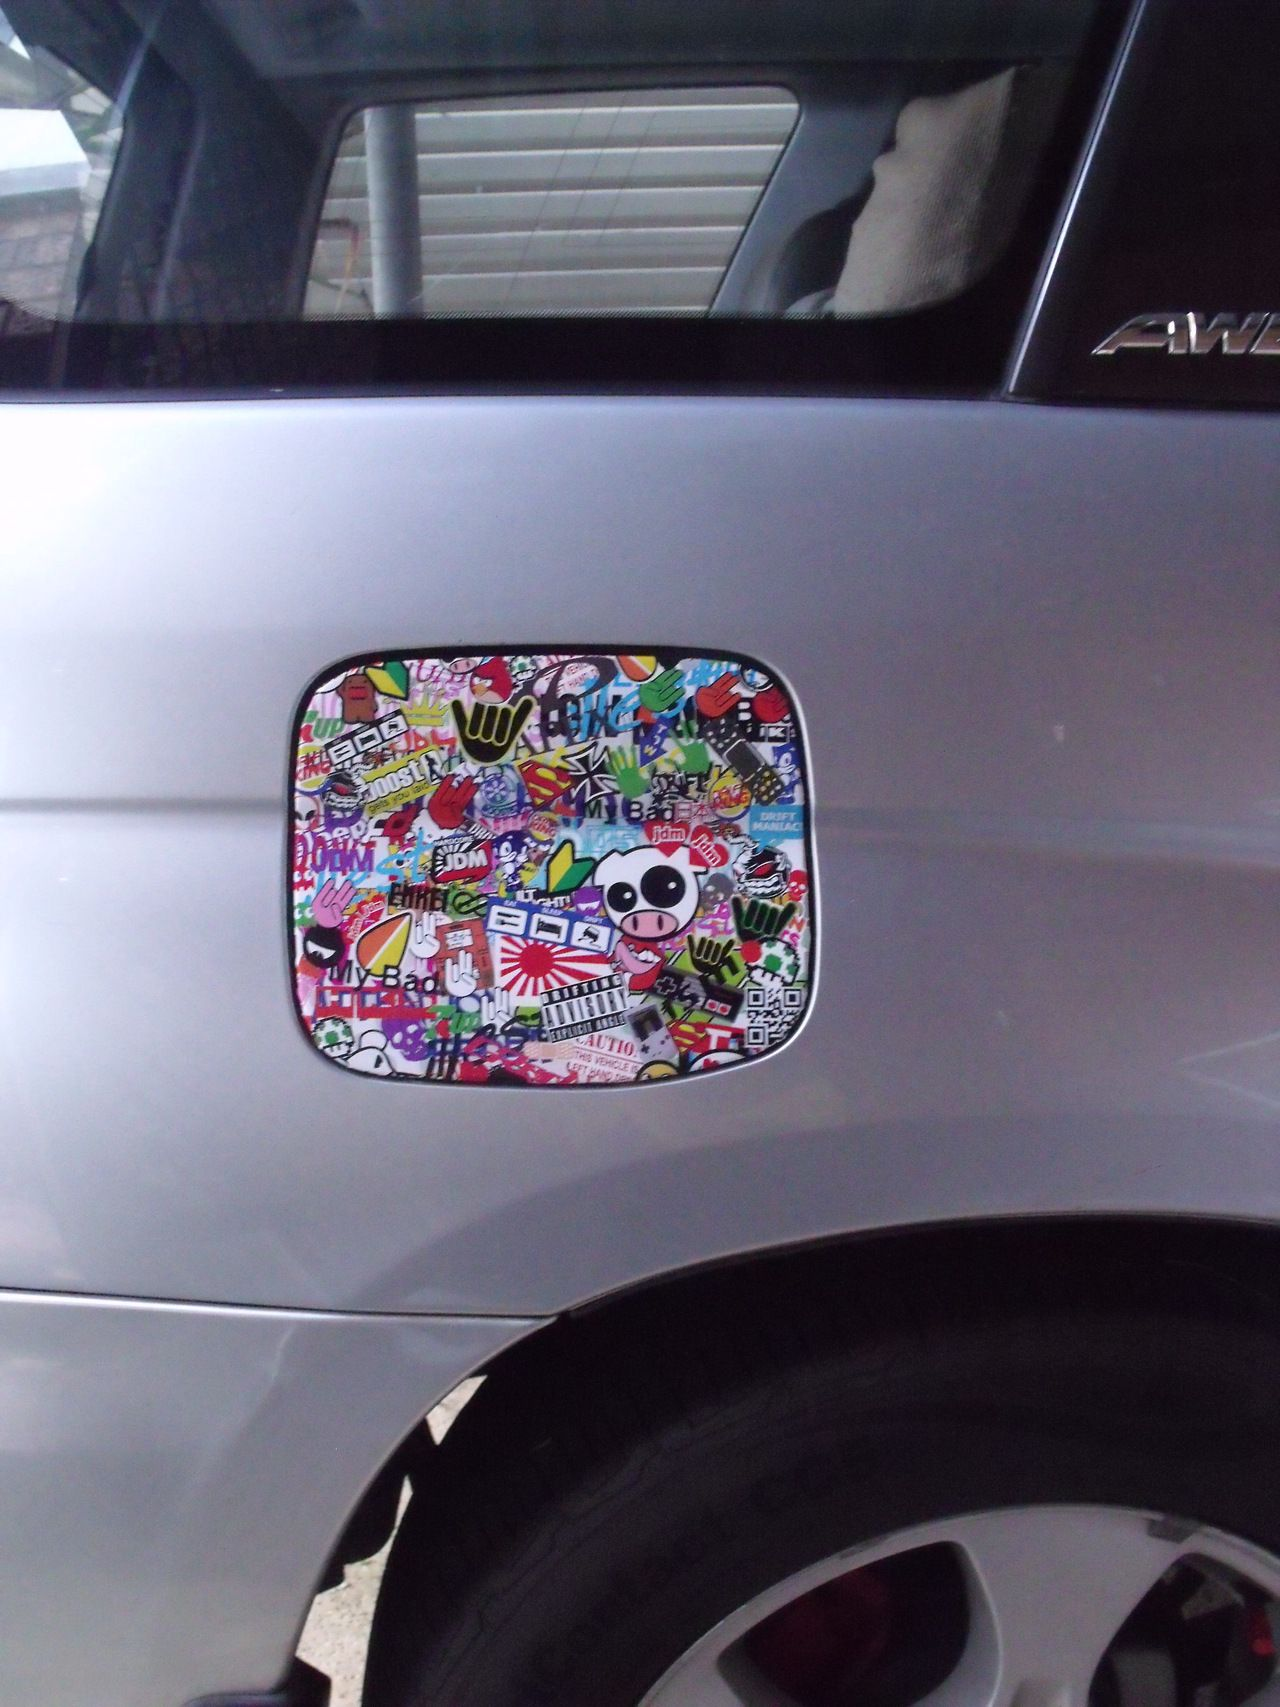 Stickerbomb tumblr vehicle signage sticker bomb car stickers car decals car